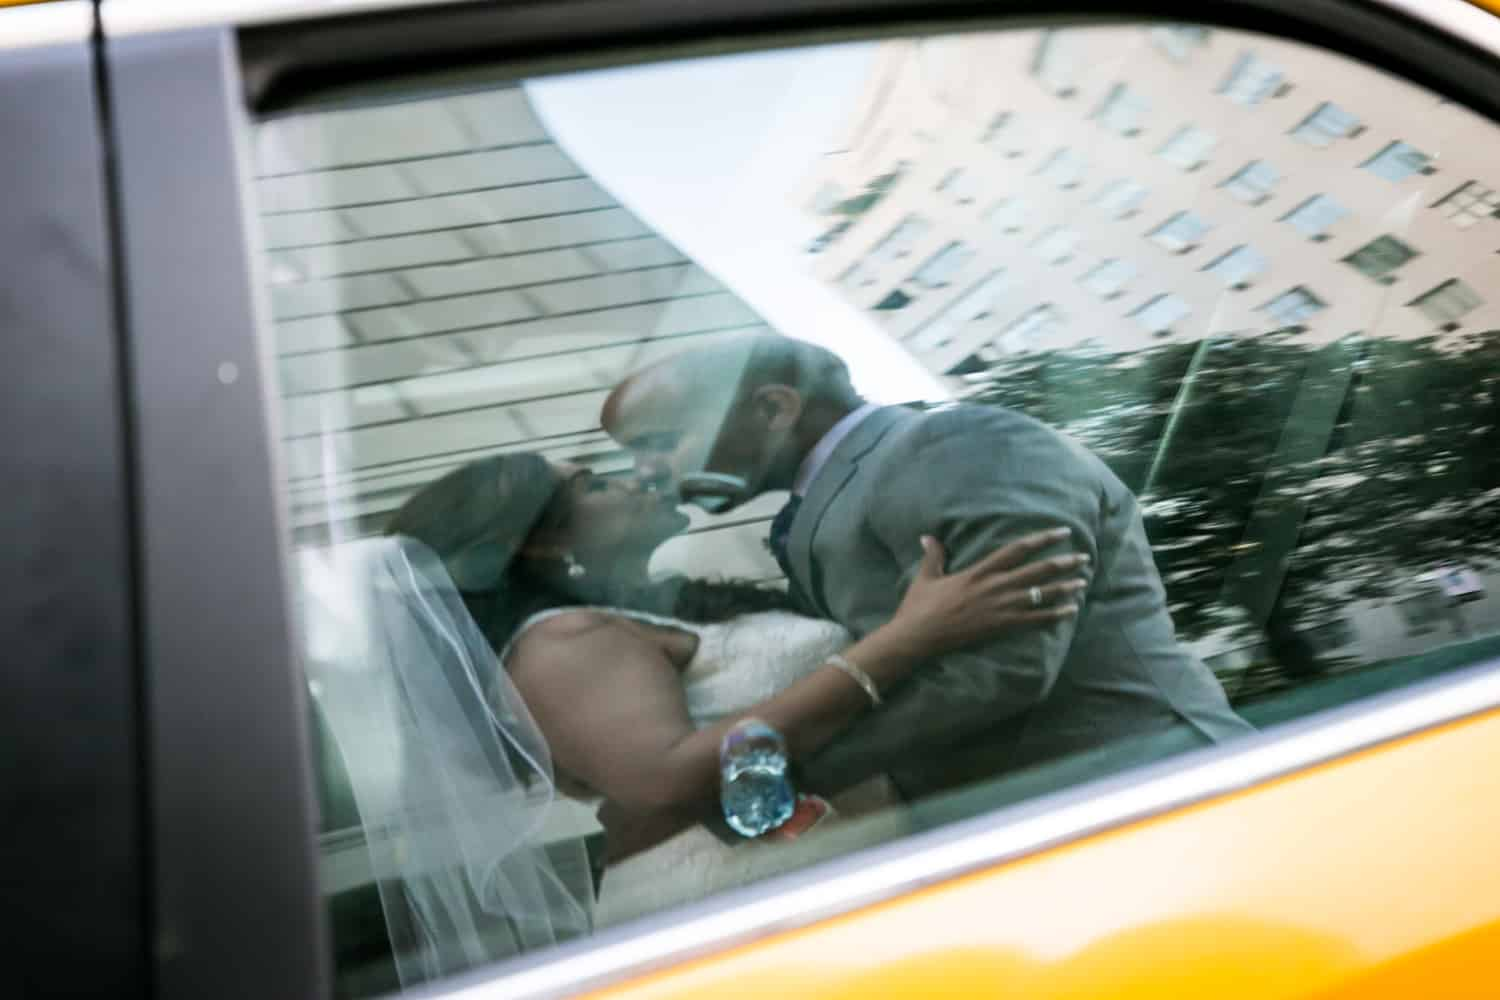 Reflection in taxi cab window of bride and groom kissing